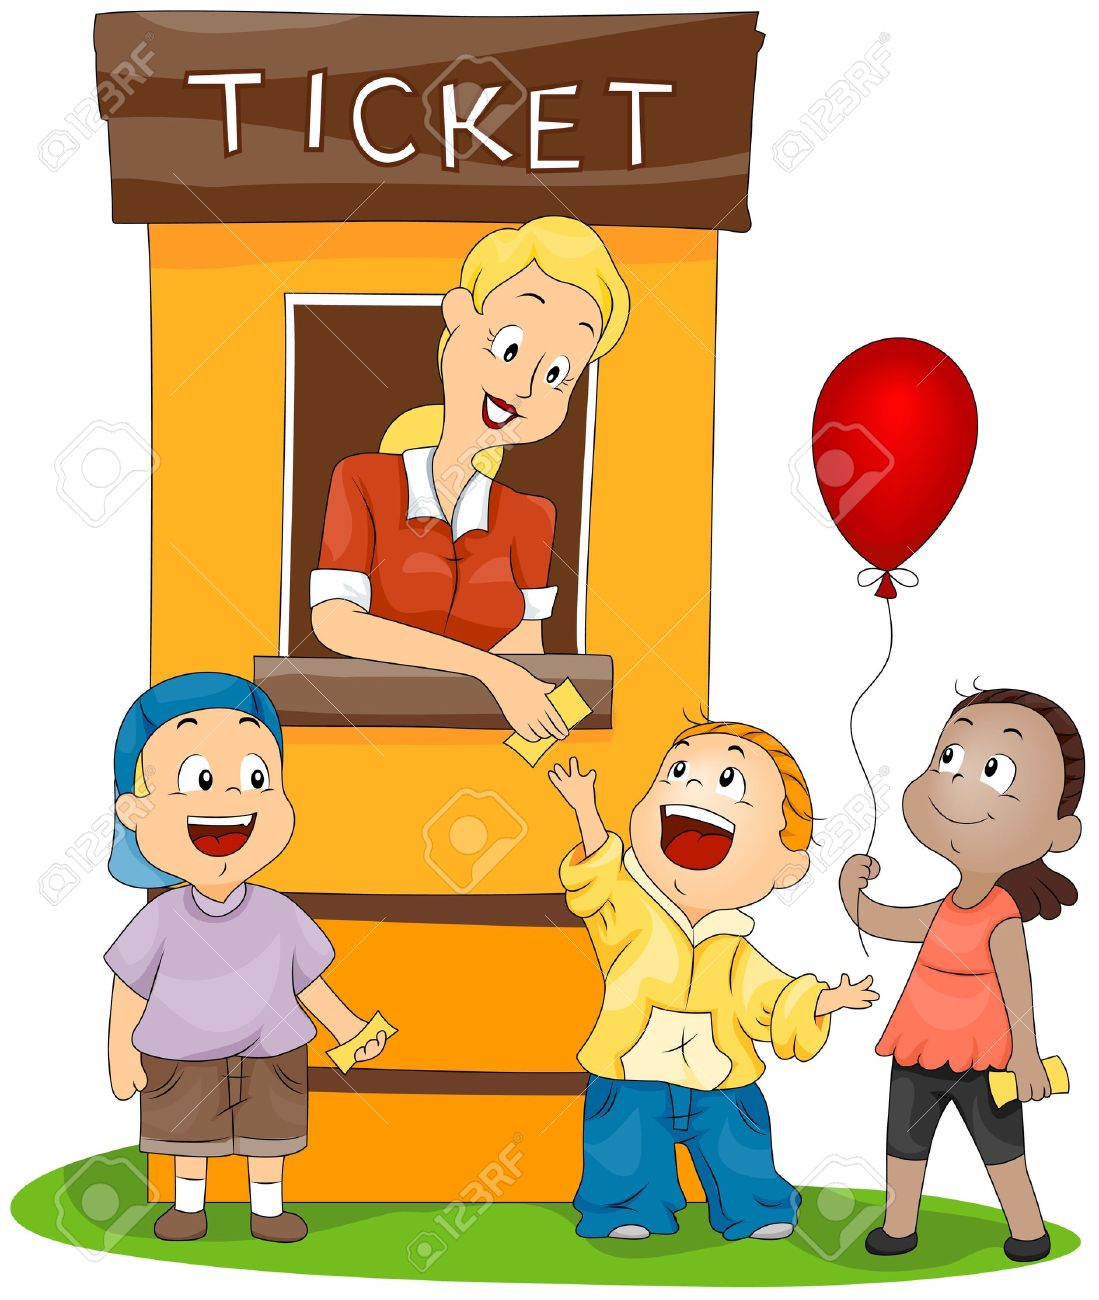 3178 Ticket free clipart.